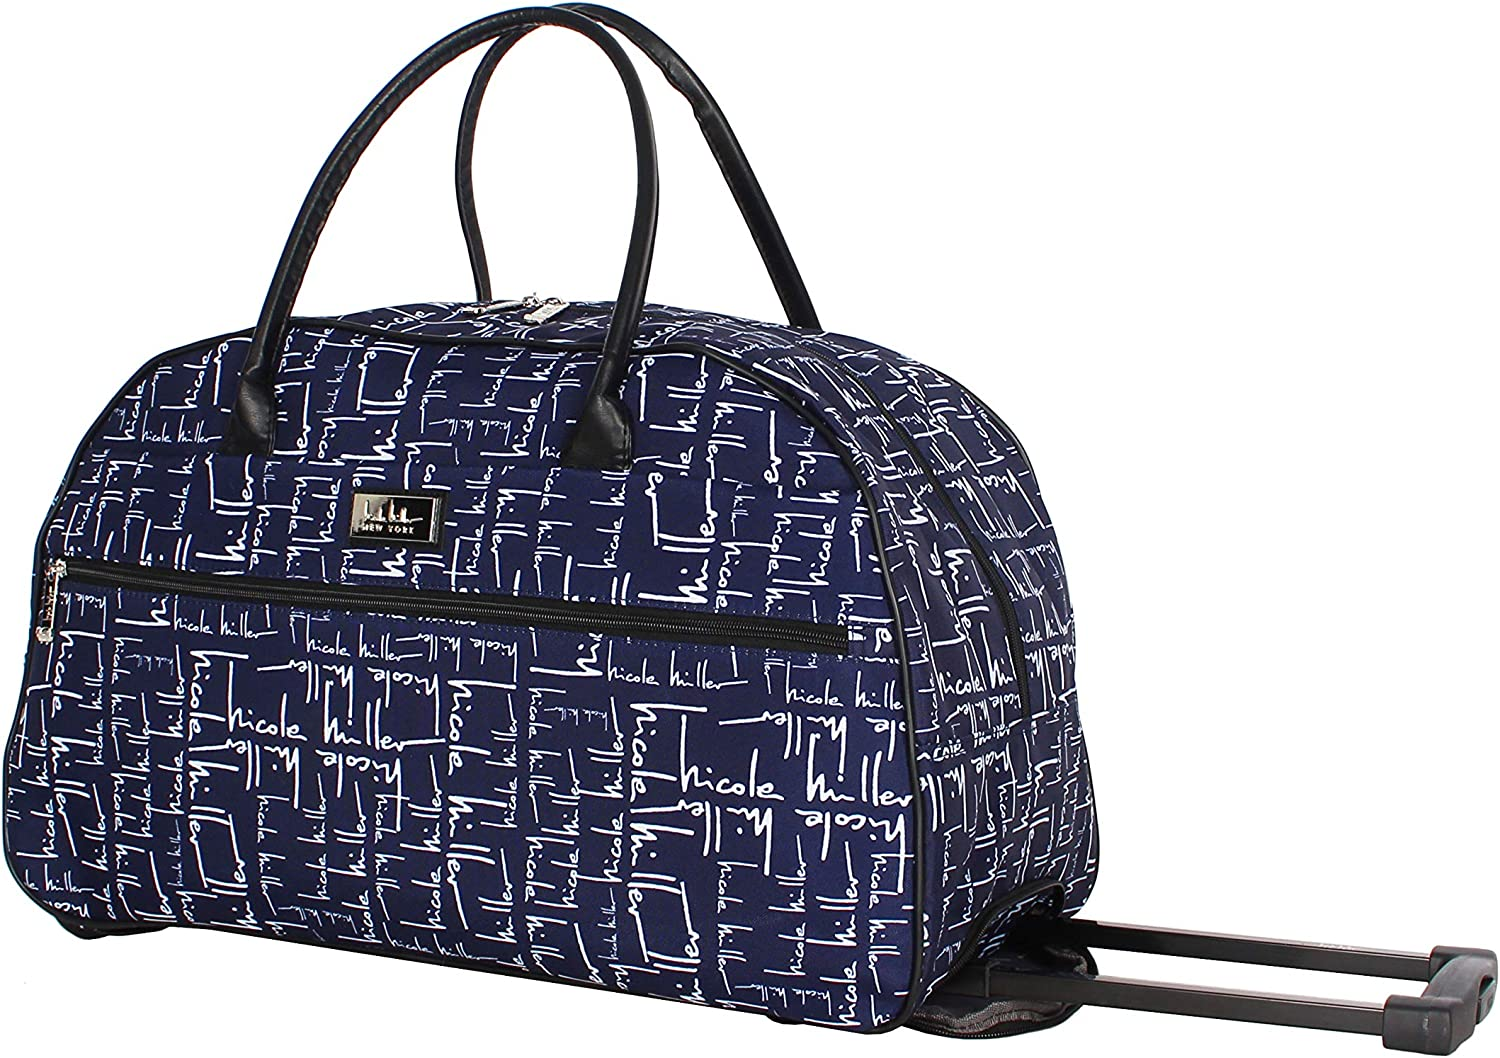 Nicole Miller Designer Carry On Luggage Collection - Lightweight Pattern 22 Inch Duffel Bag- Weekender Overnight Business Travel Suitcase with 2- Rolling Spinner Wheels (Signature Navy)